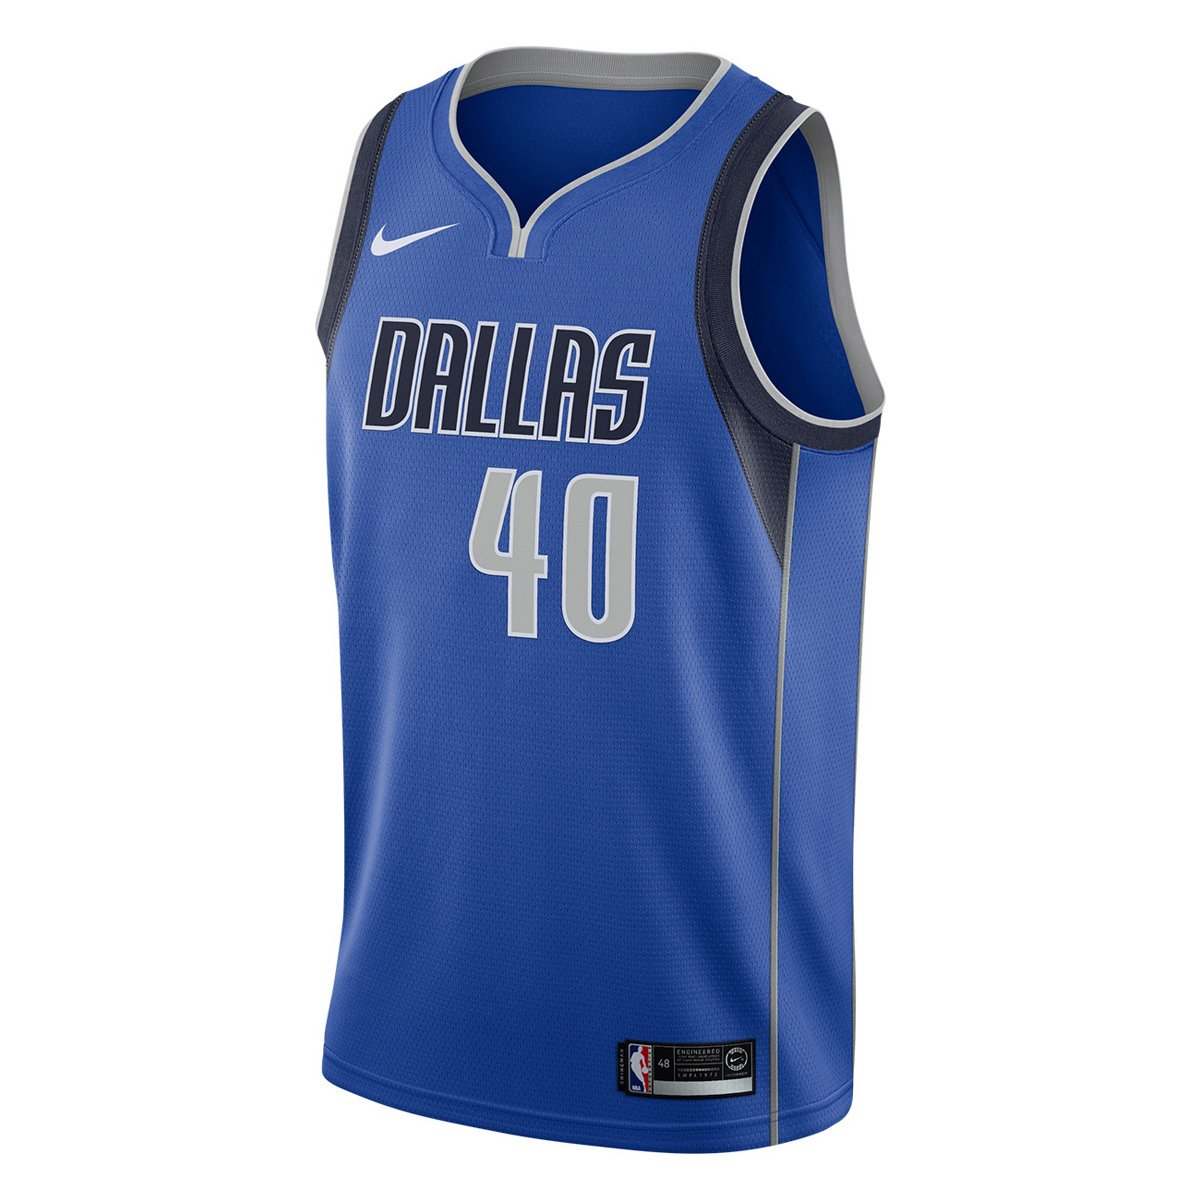 Camiseta Regata Nike Dallas Mavericks Swingman NBA - Harrison Barnes f741453c702